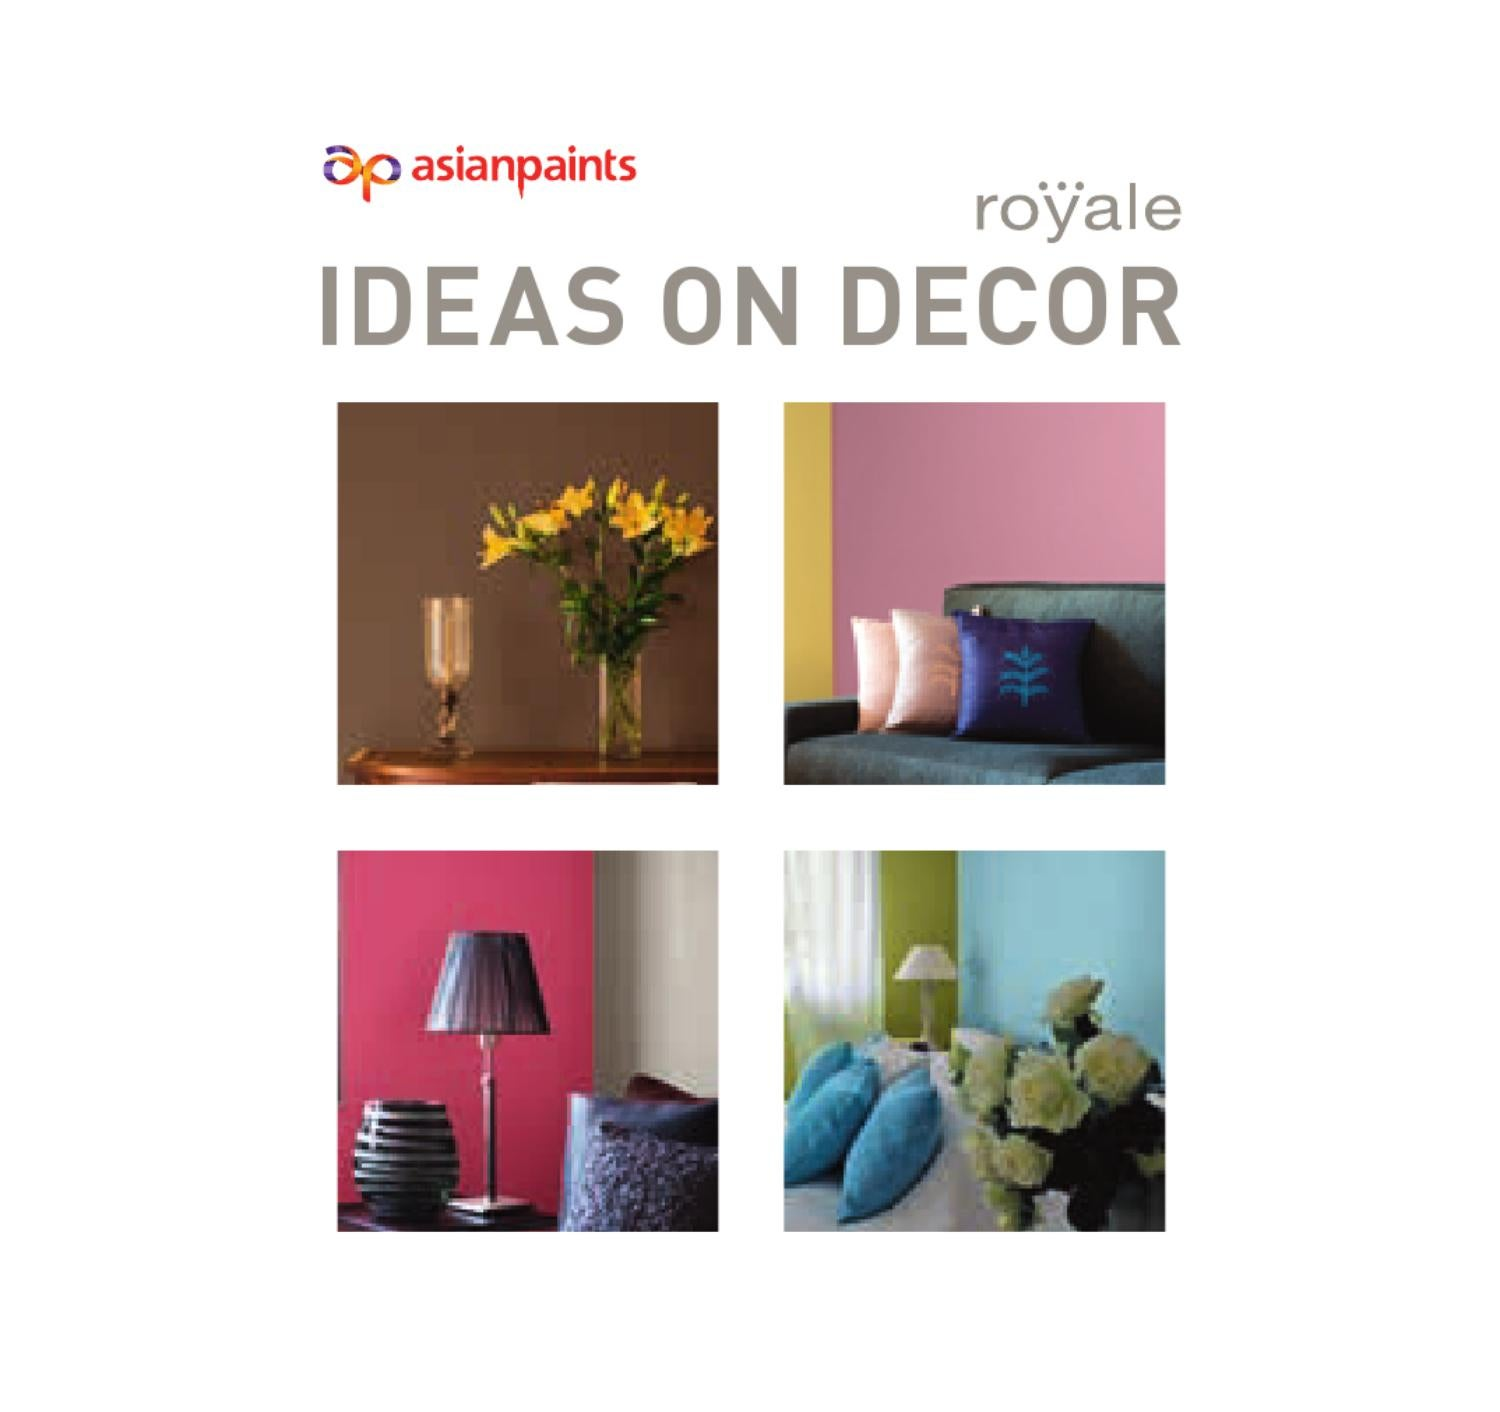 Purple And Silver Bedroom Ideas On Decor Book Web By Asian Paints Limited Issuu